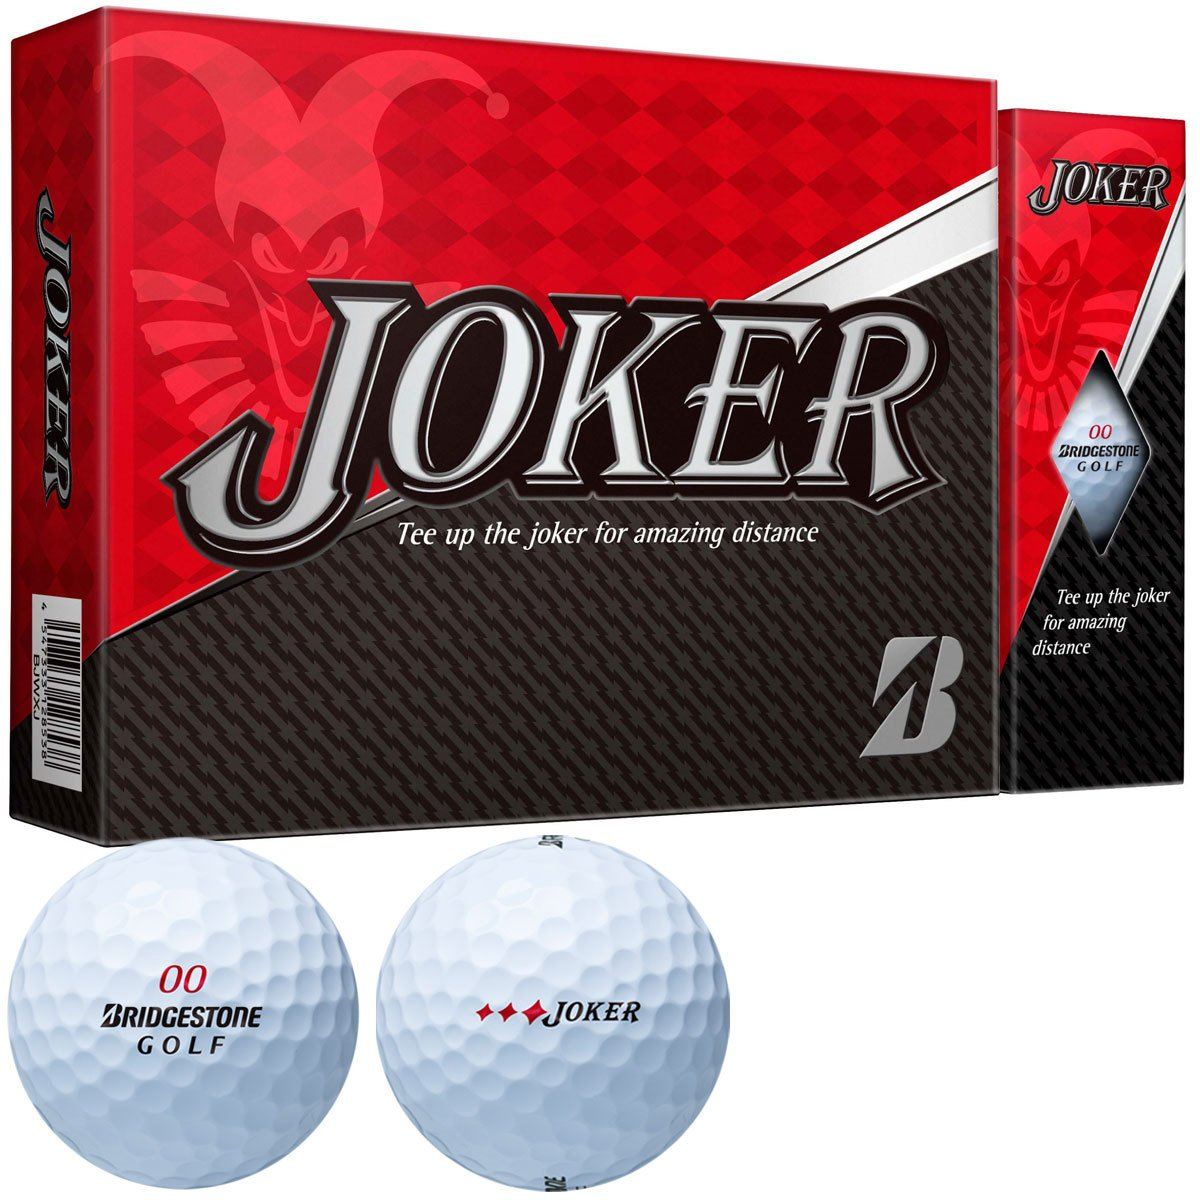 BRIDGESTONE GOLF  JOKER